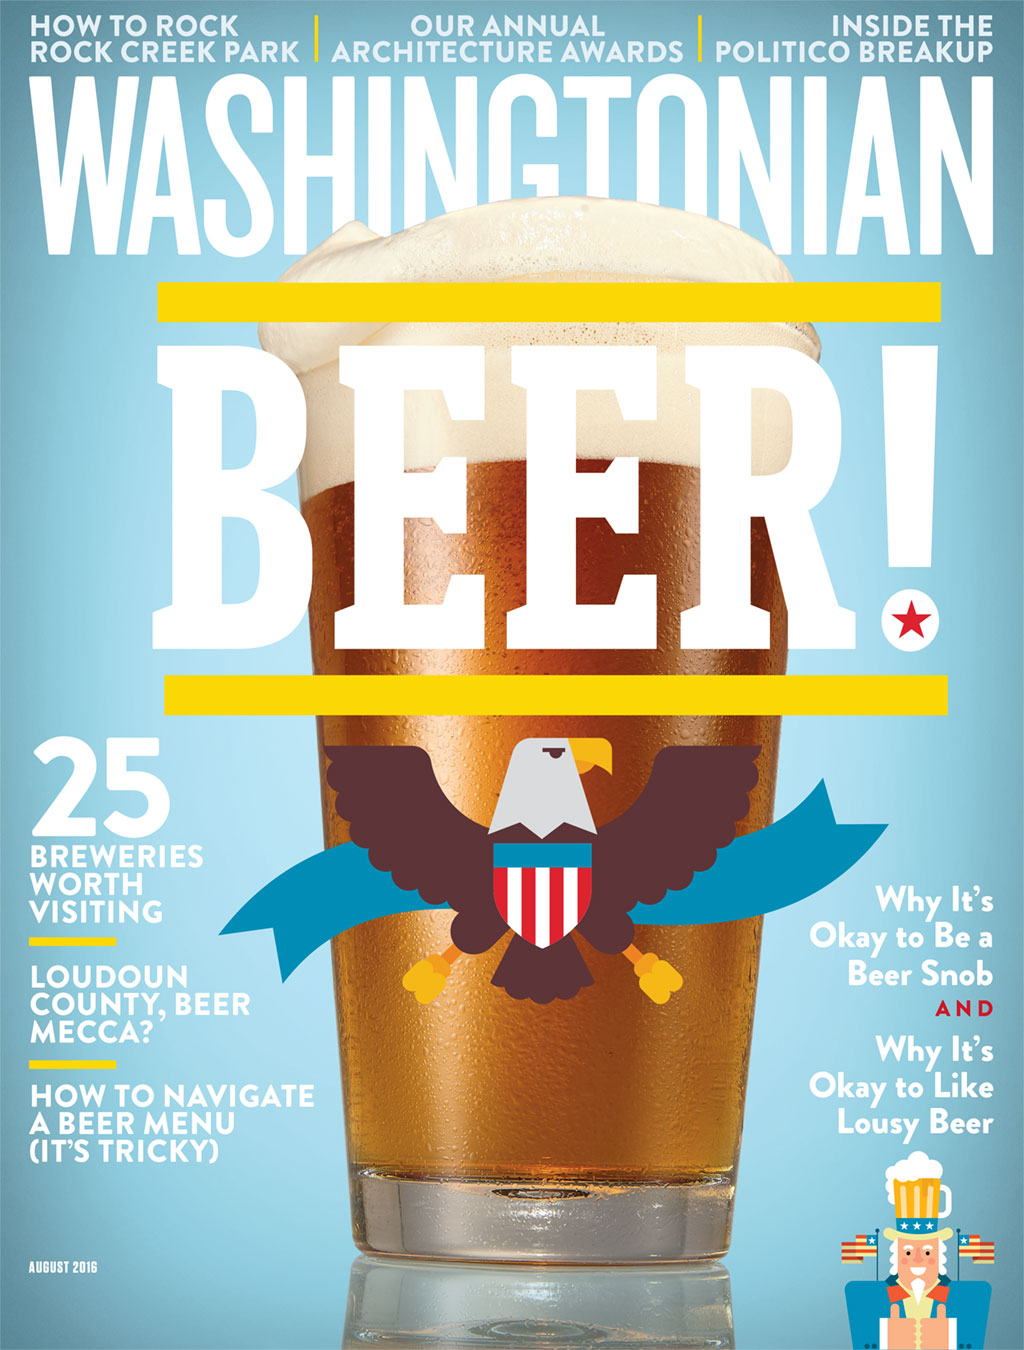 DC Beer. Photograph by Jeff Elkins. Illustrations by Mikey Burton.